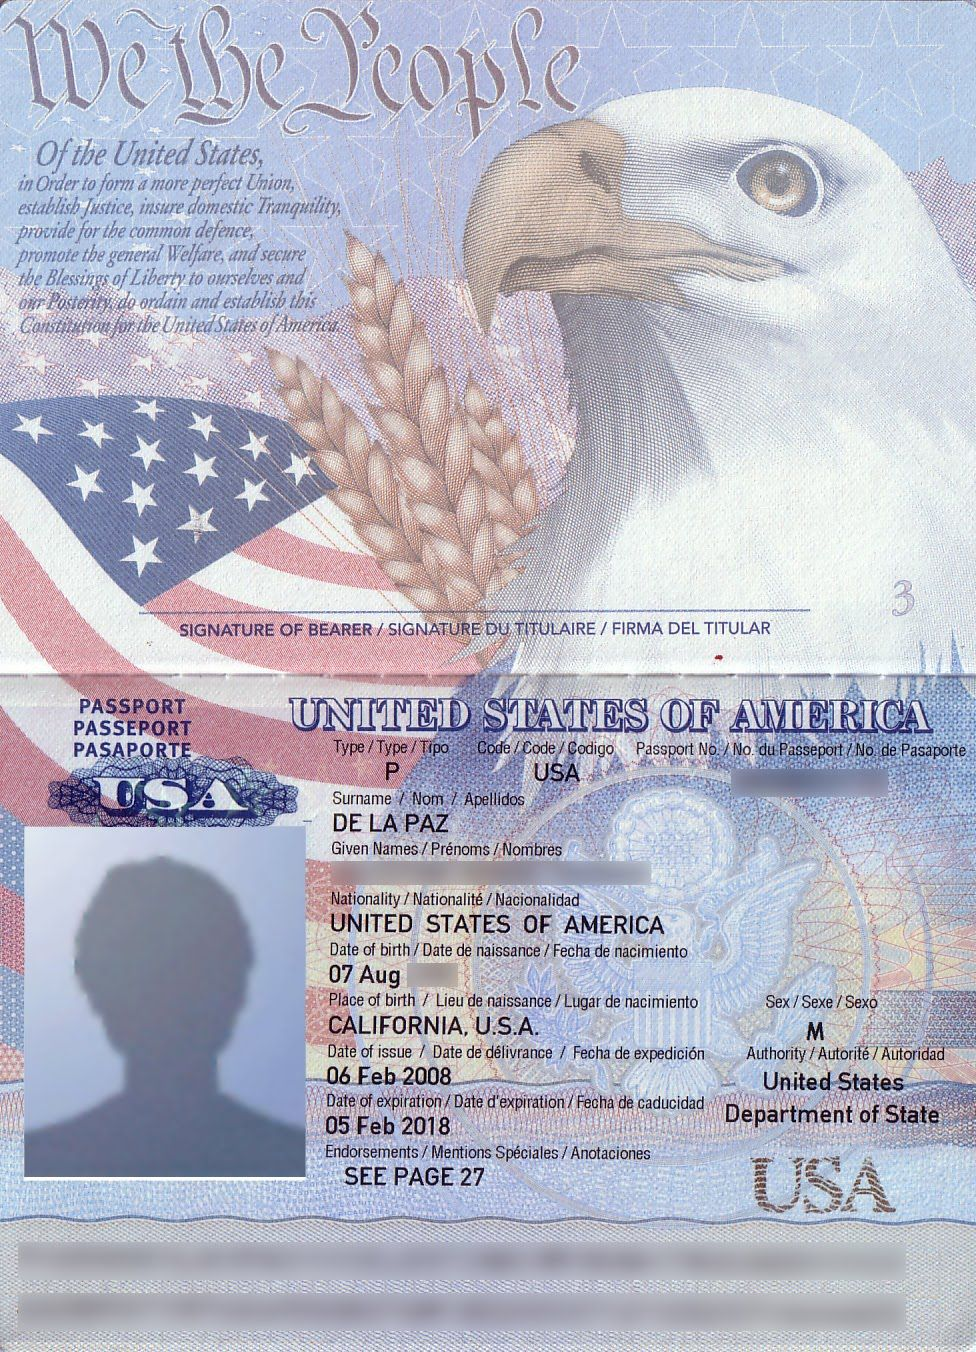 So you see having the two passports affords me the mobility to – Fake Document Templates